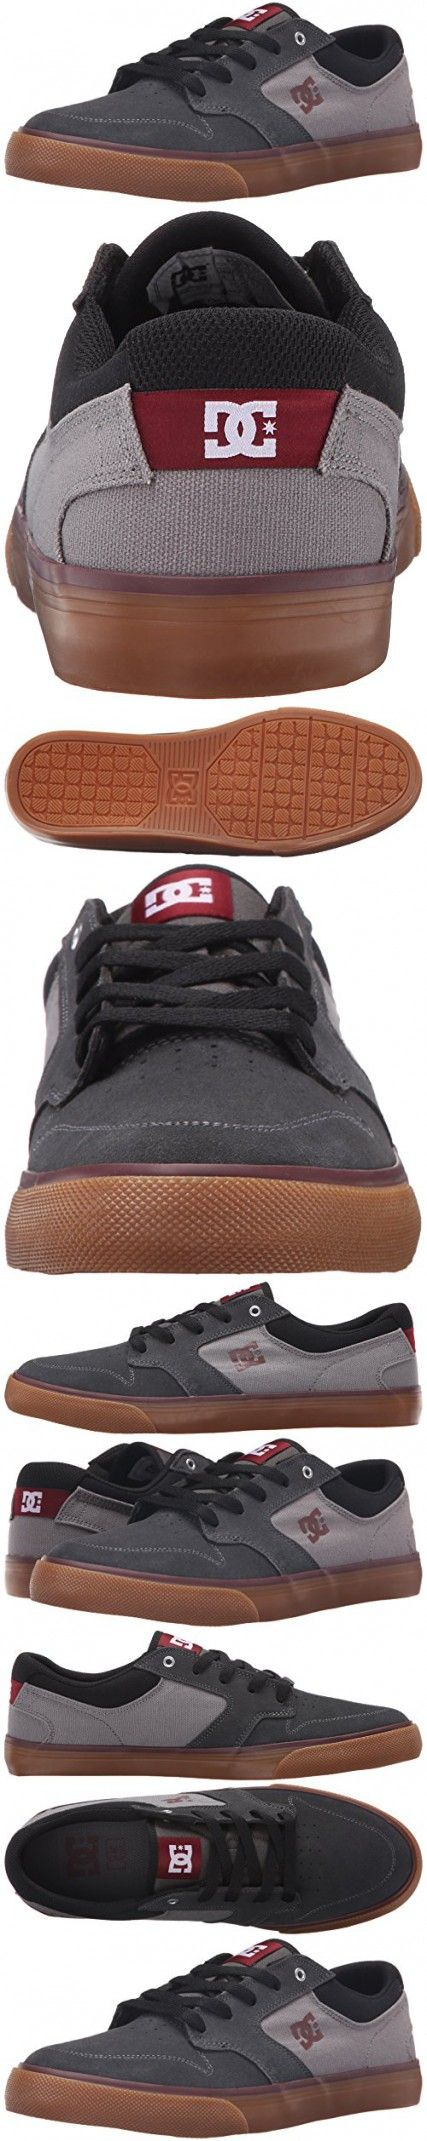 DC Men's Argosy Vulc Skate Shoe, Charcoal/Black/Red, 10 M US